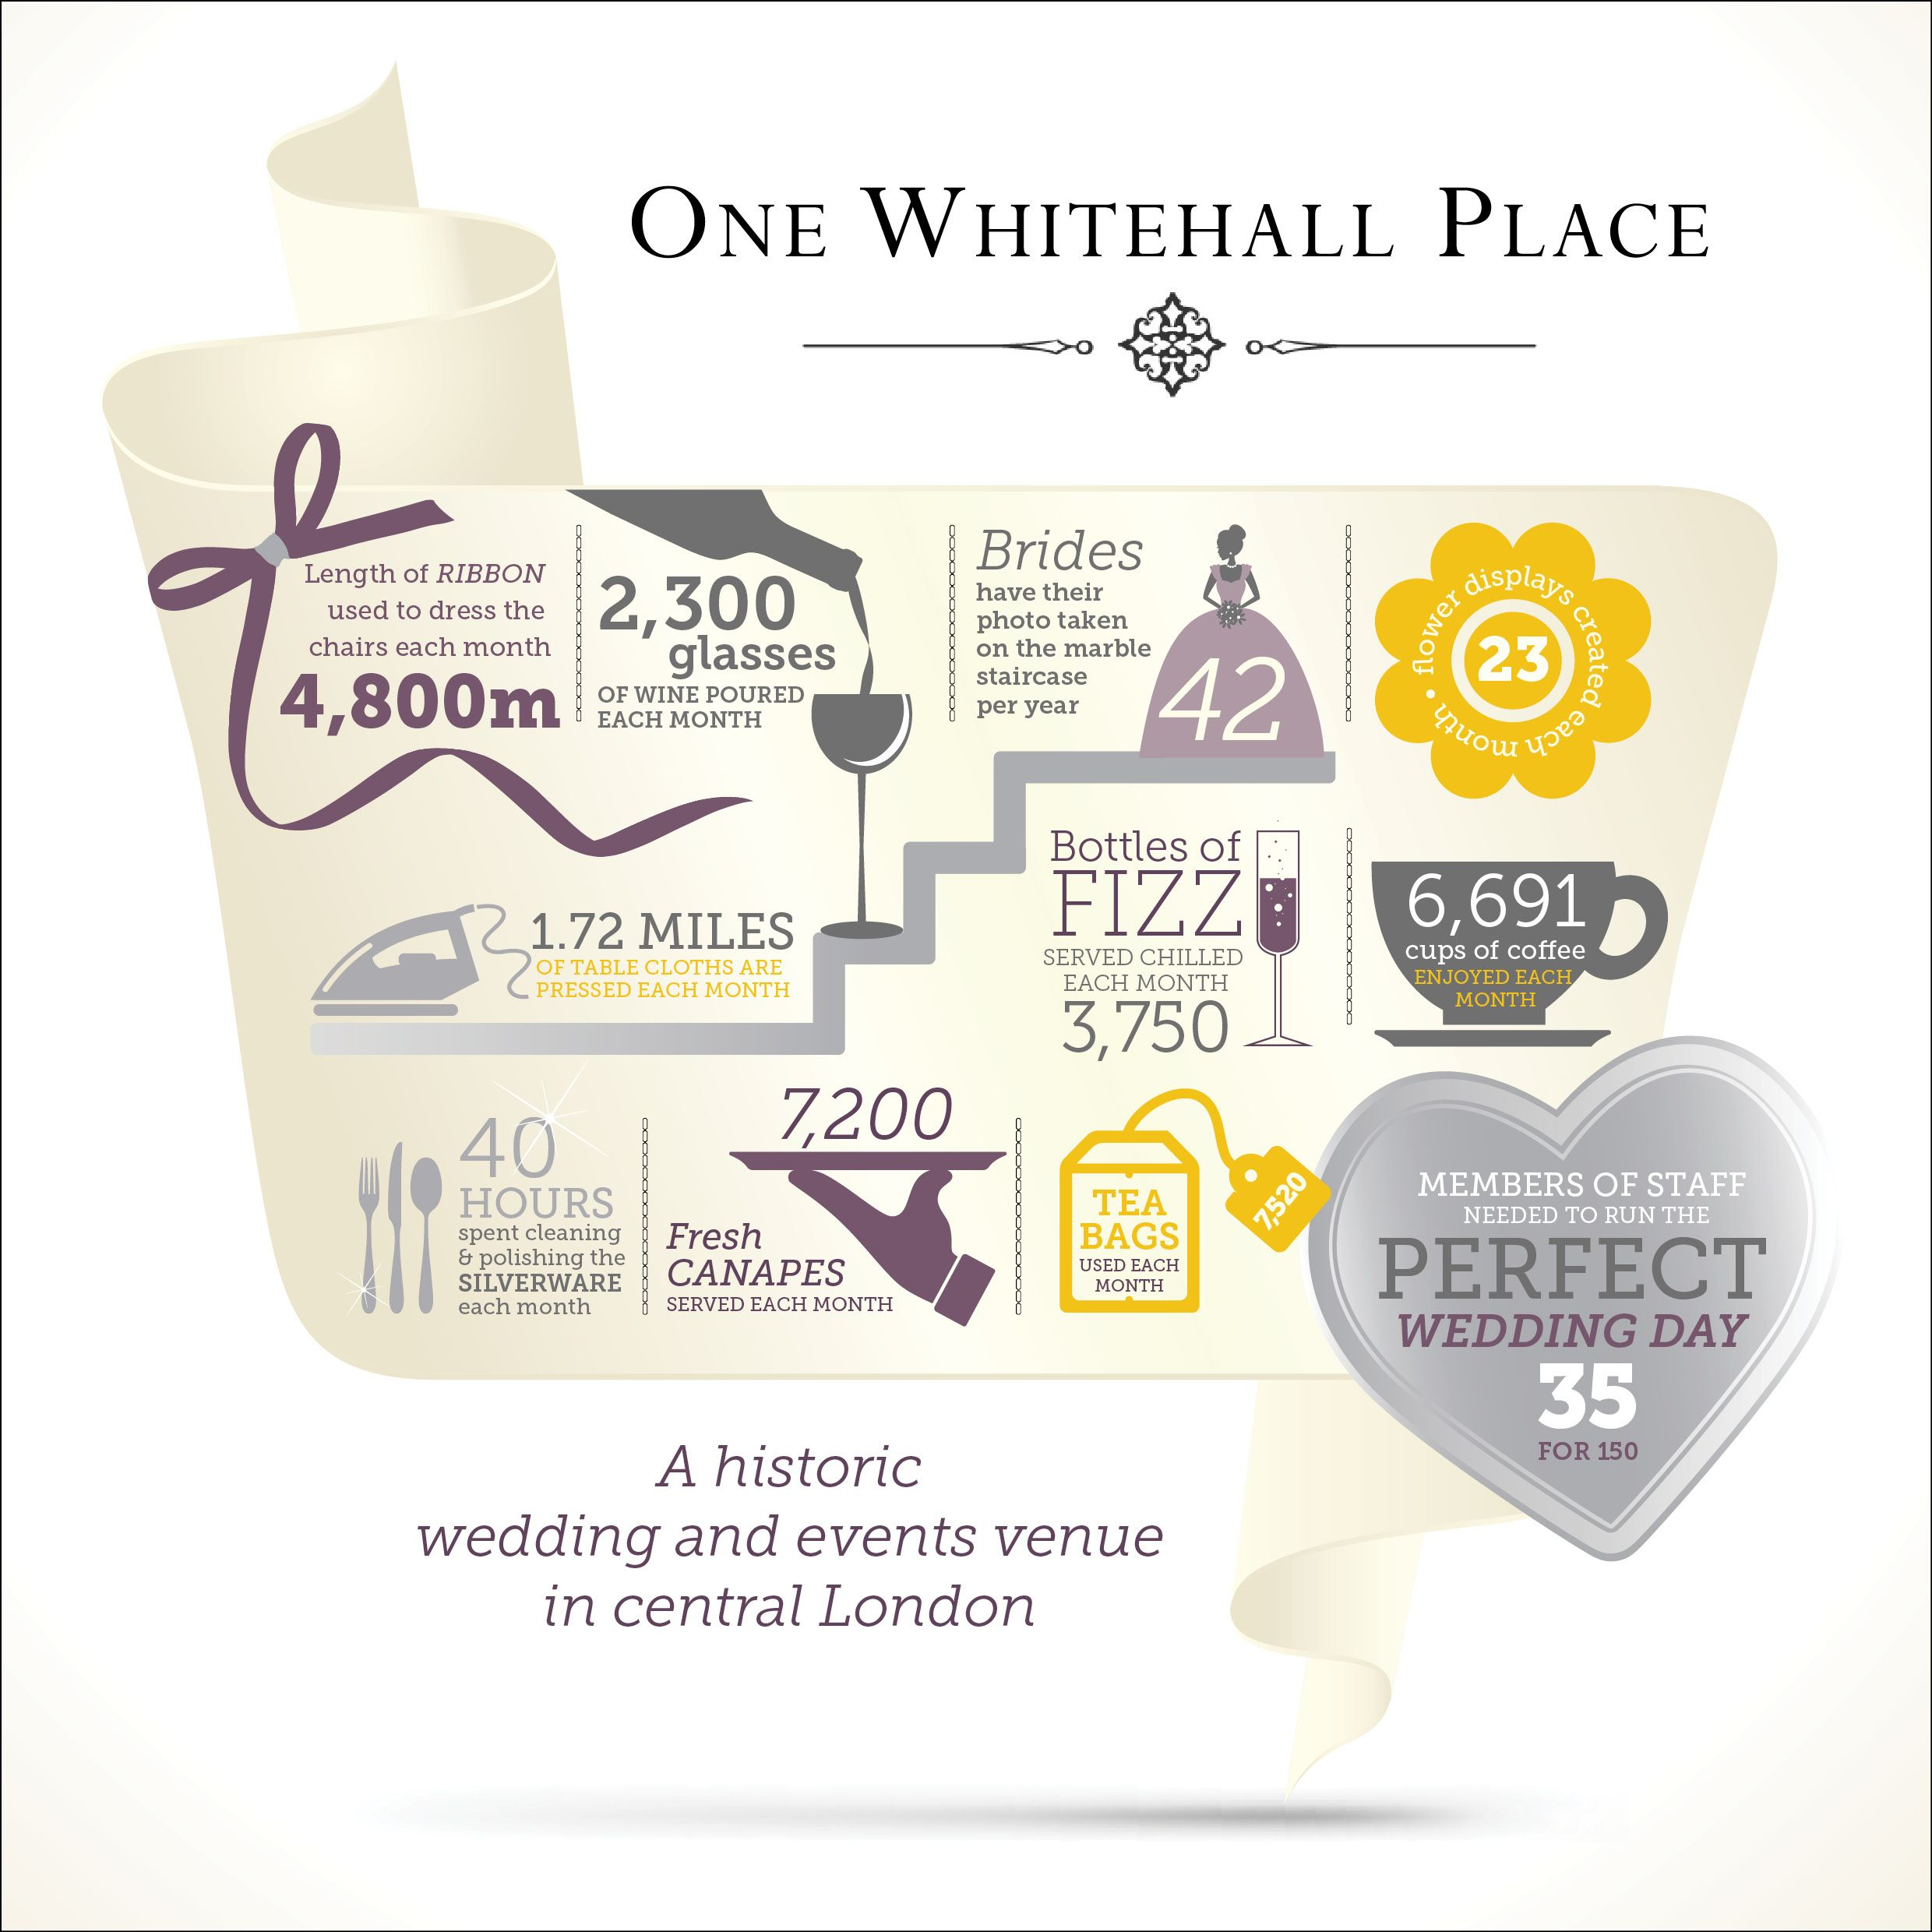 One Whitehall Place London weddings and events venue